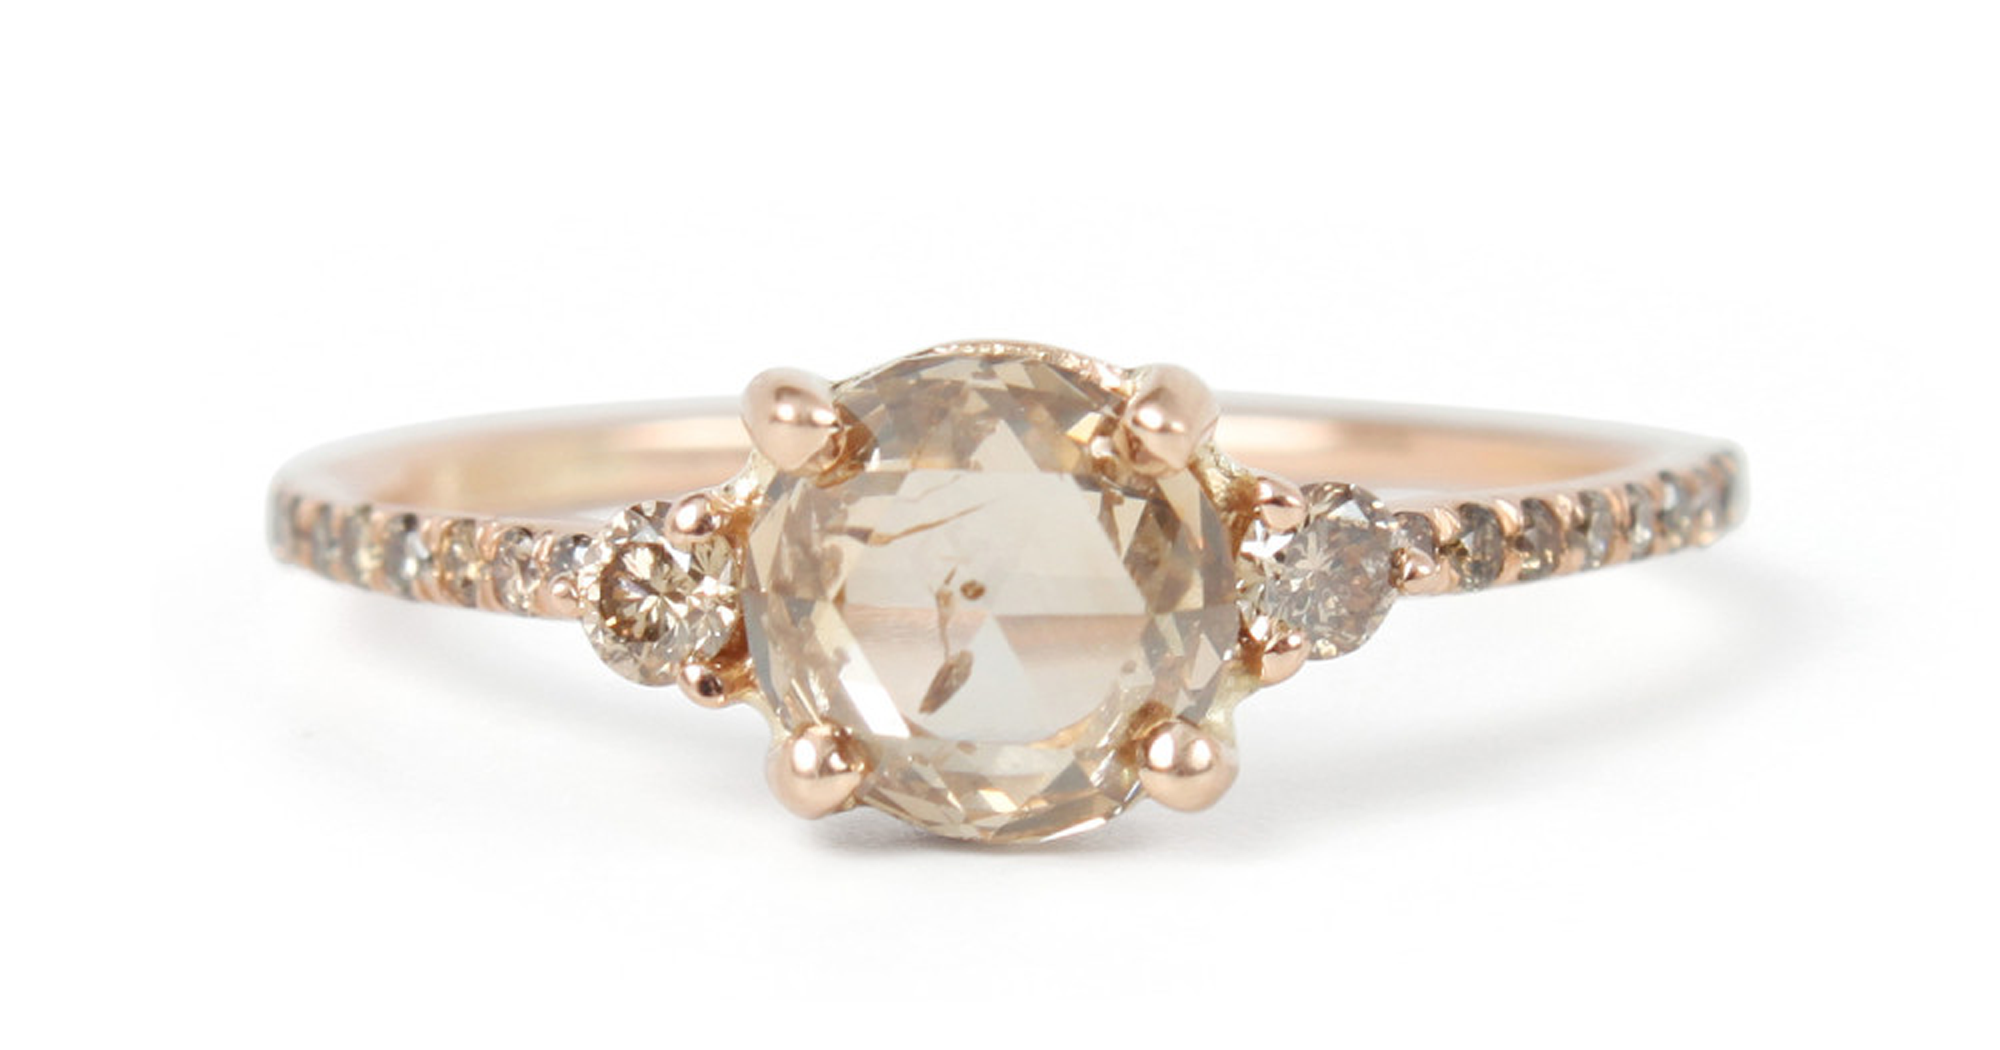 New Engagement Ring Trends In 2016